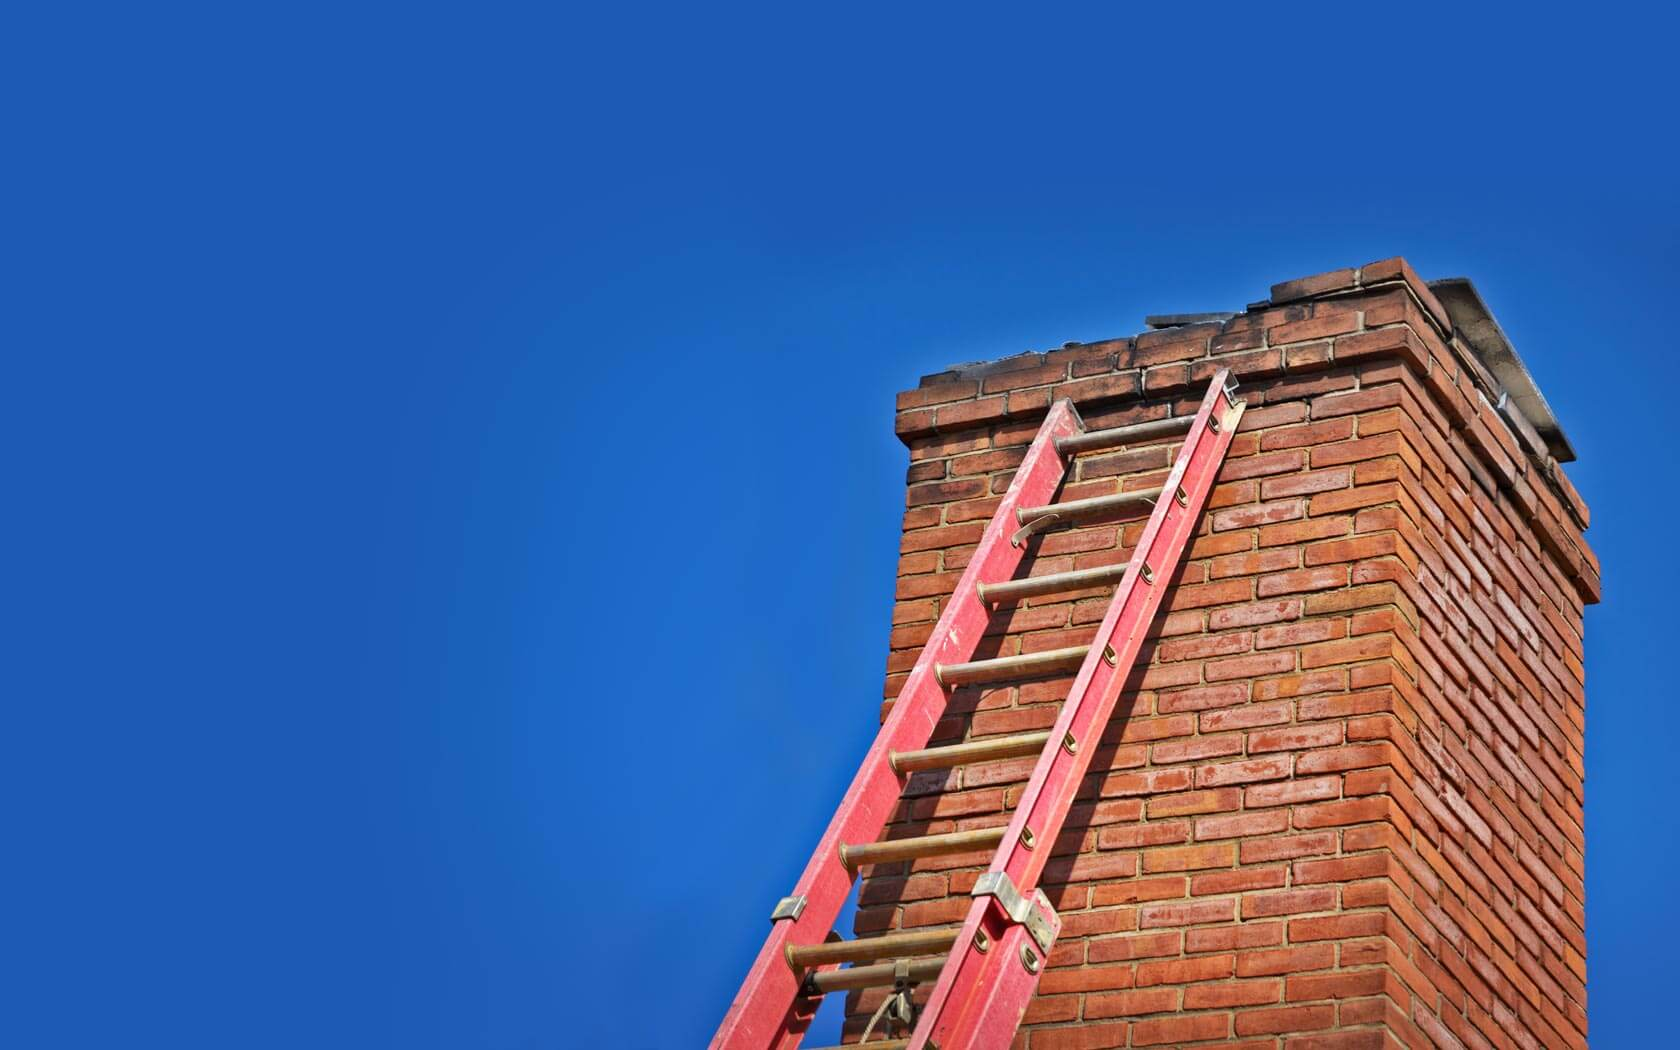 Coopersville Chimney Cleaning